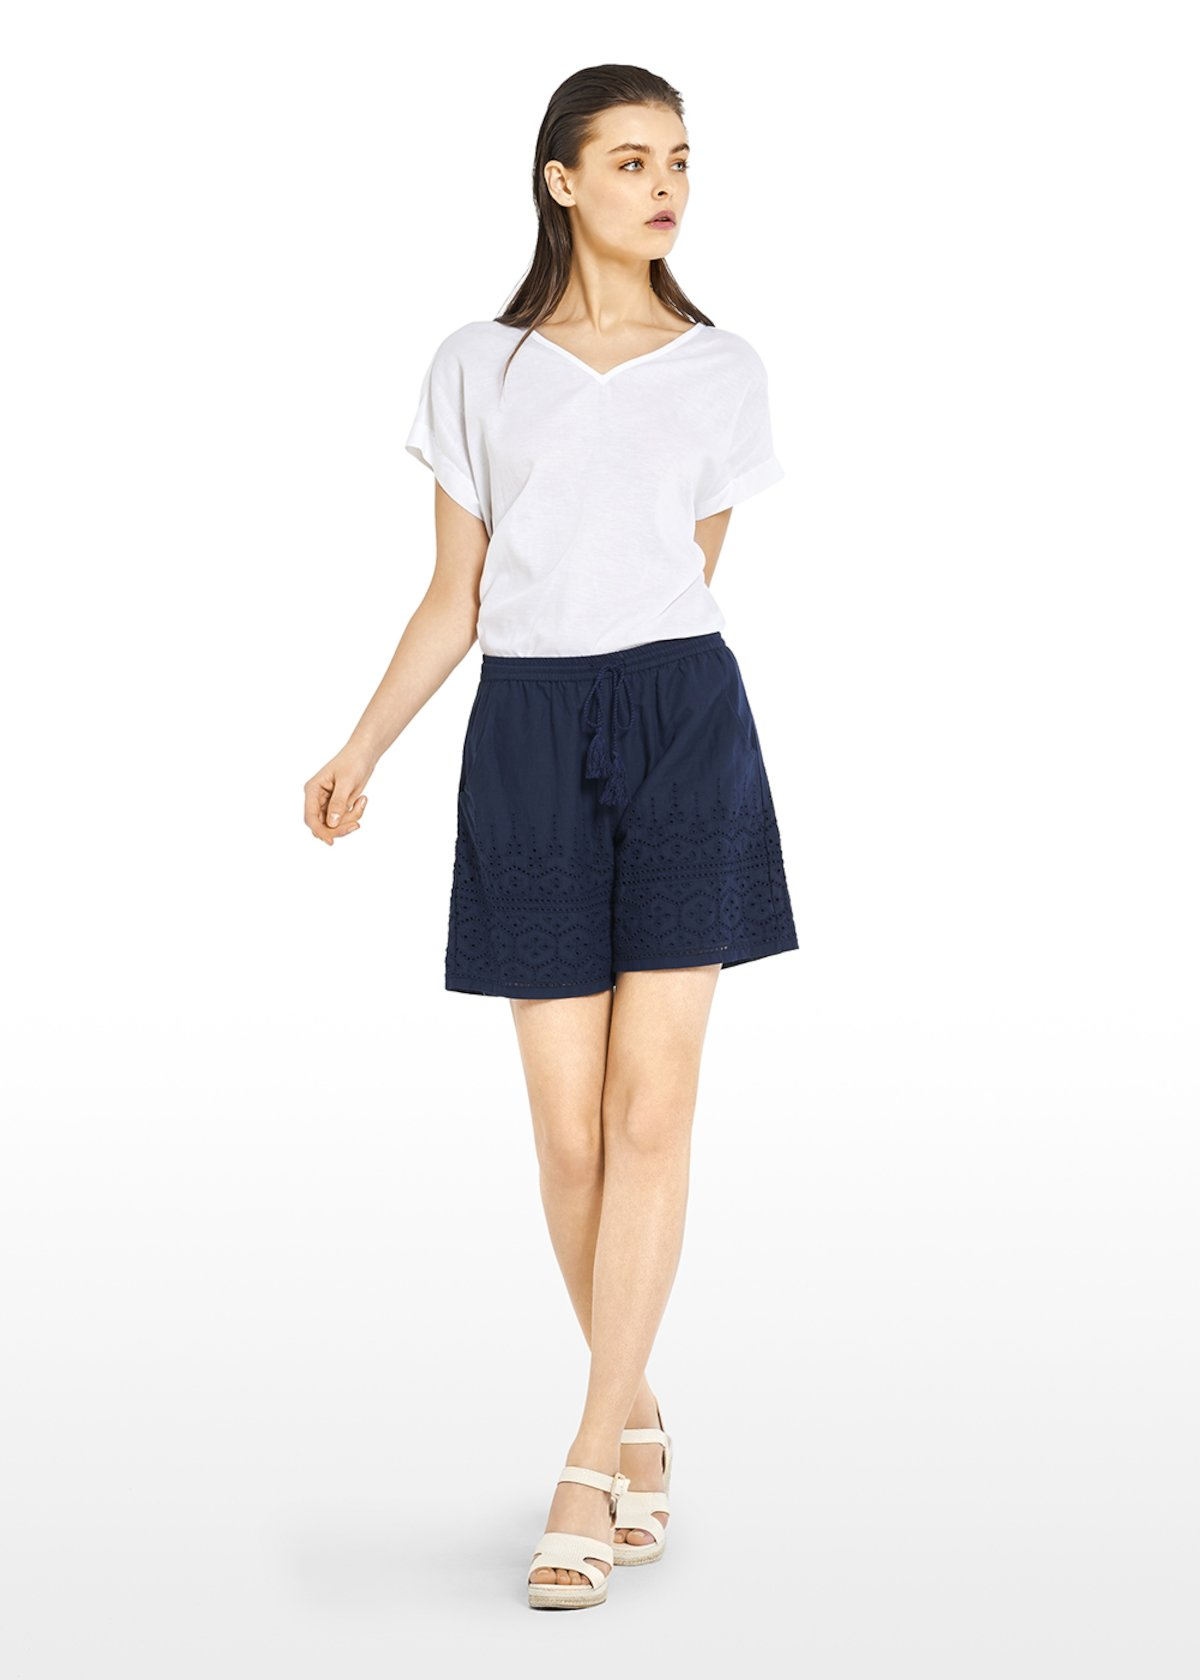 Sibylla T-shirt in linen blend with V-neck - White - Woman